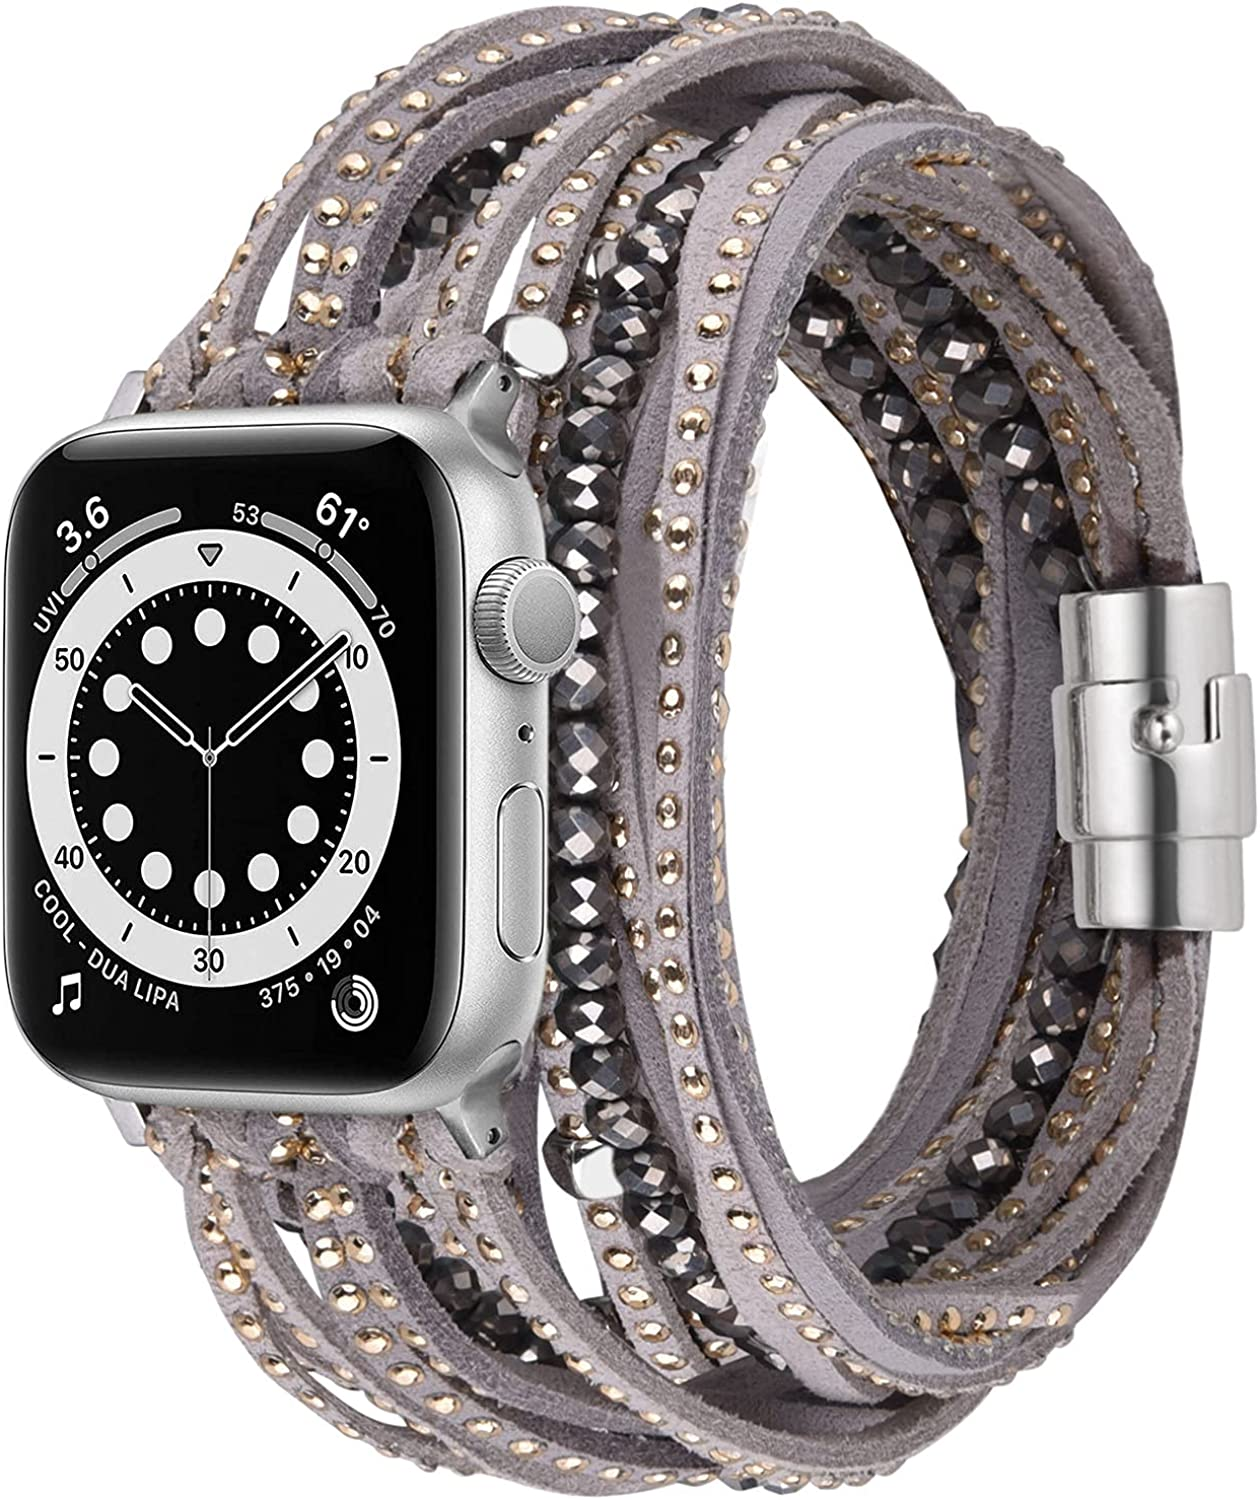 V-MORO Compatible with Apple Watch Bands Multilayer Wrap Bracelets for Women Girl Suede Leather with Handmade Bead Strap Replacement for iWatch Series 7/6/5/4/3/2/1/SE,41/40/38/45/44/42mm